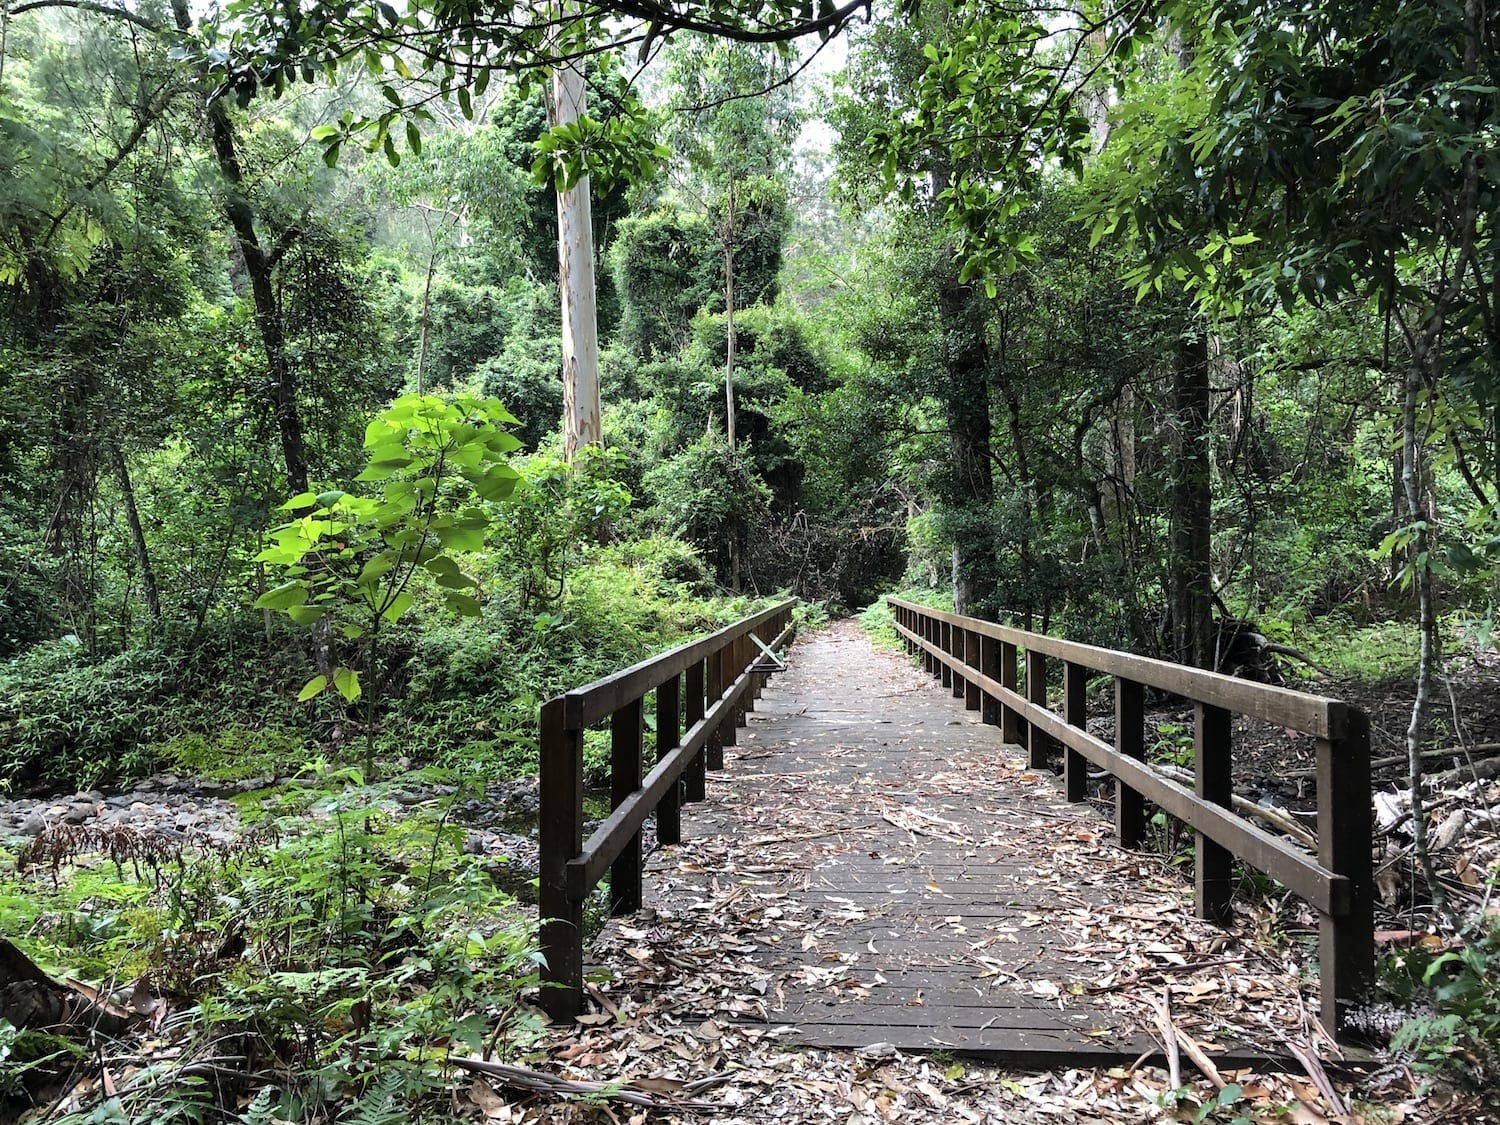 The Dalrymple walk starts at Manna Gum campground. It gives you a taste of the rainforest.